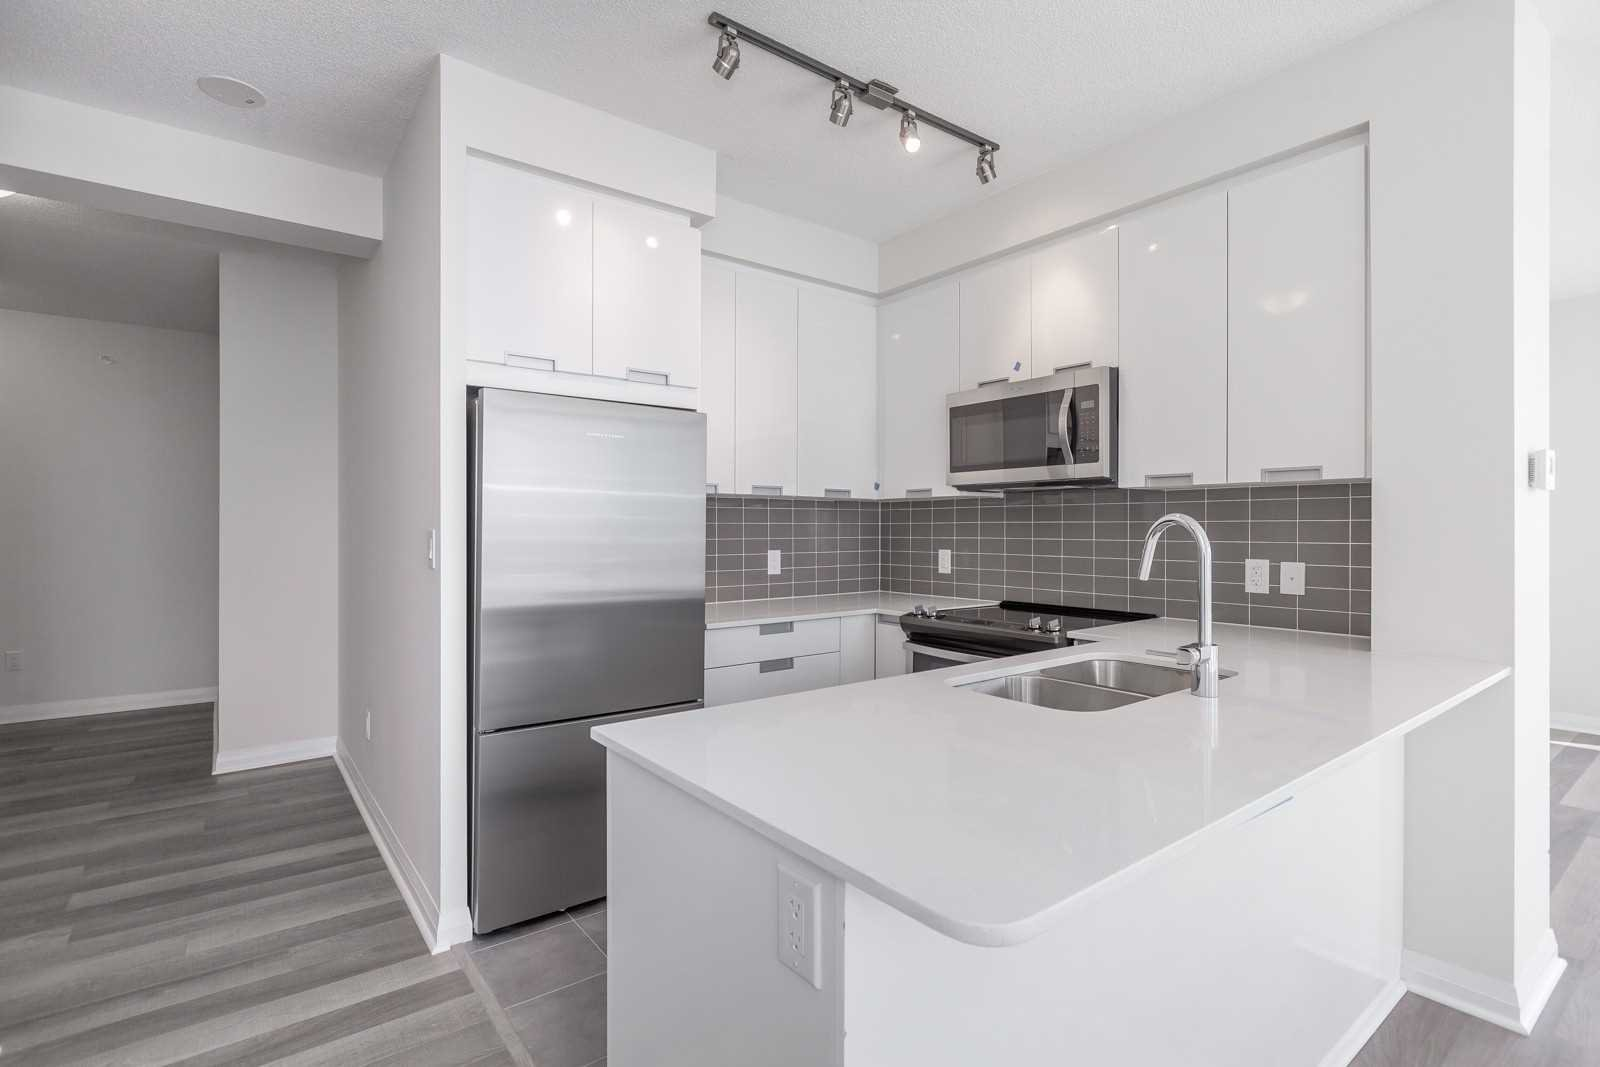 Photo 5: Photos: 1204 5025 Four Springs Avenue in Mississauga: Hurontario Condo for lease : MLS®# W4582092